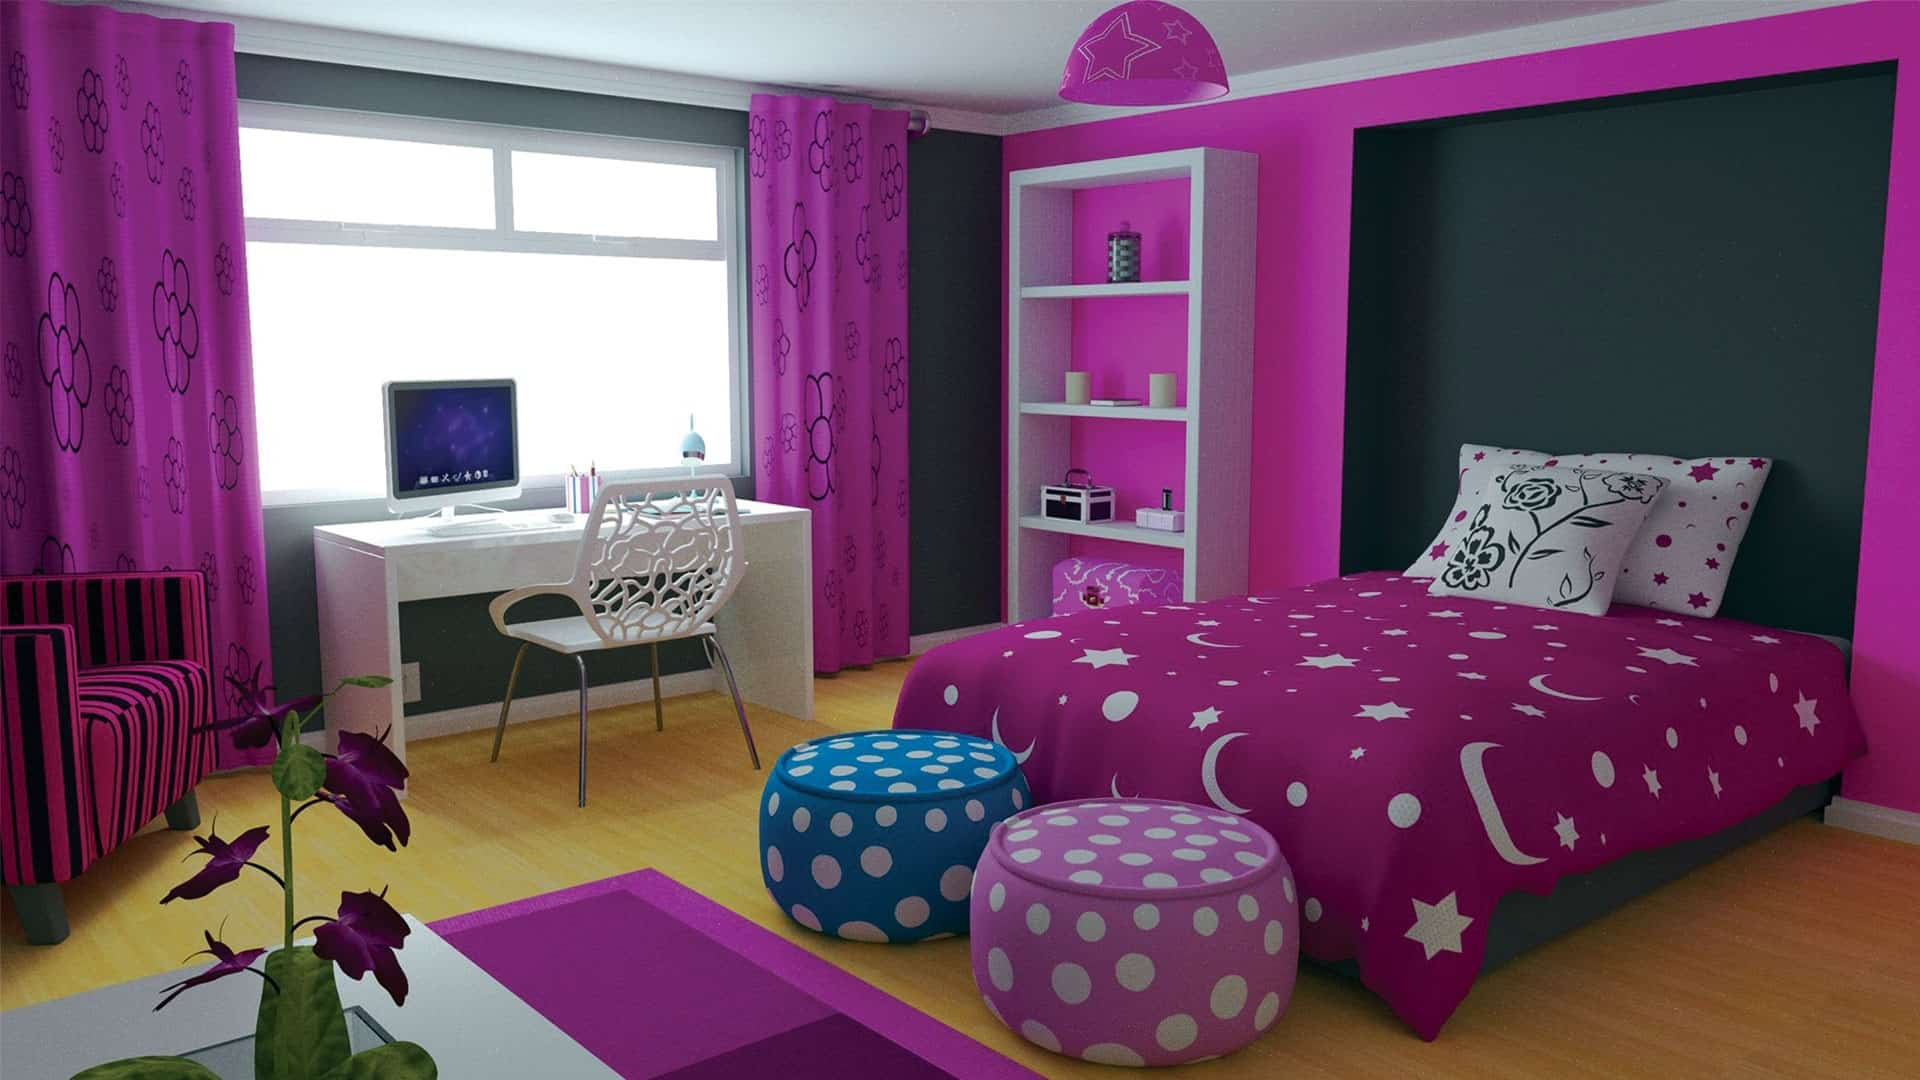 Home decor trends 2017 purple teen room - Deco chambre jeune fille ...